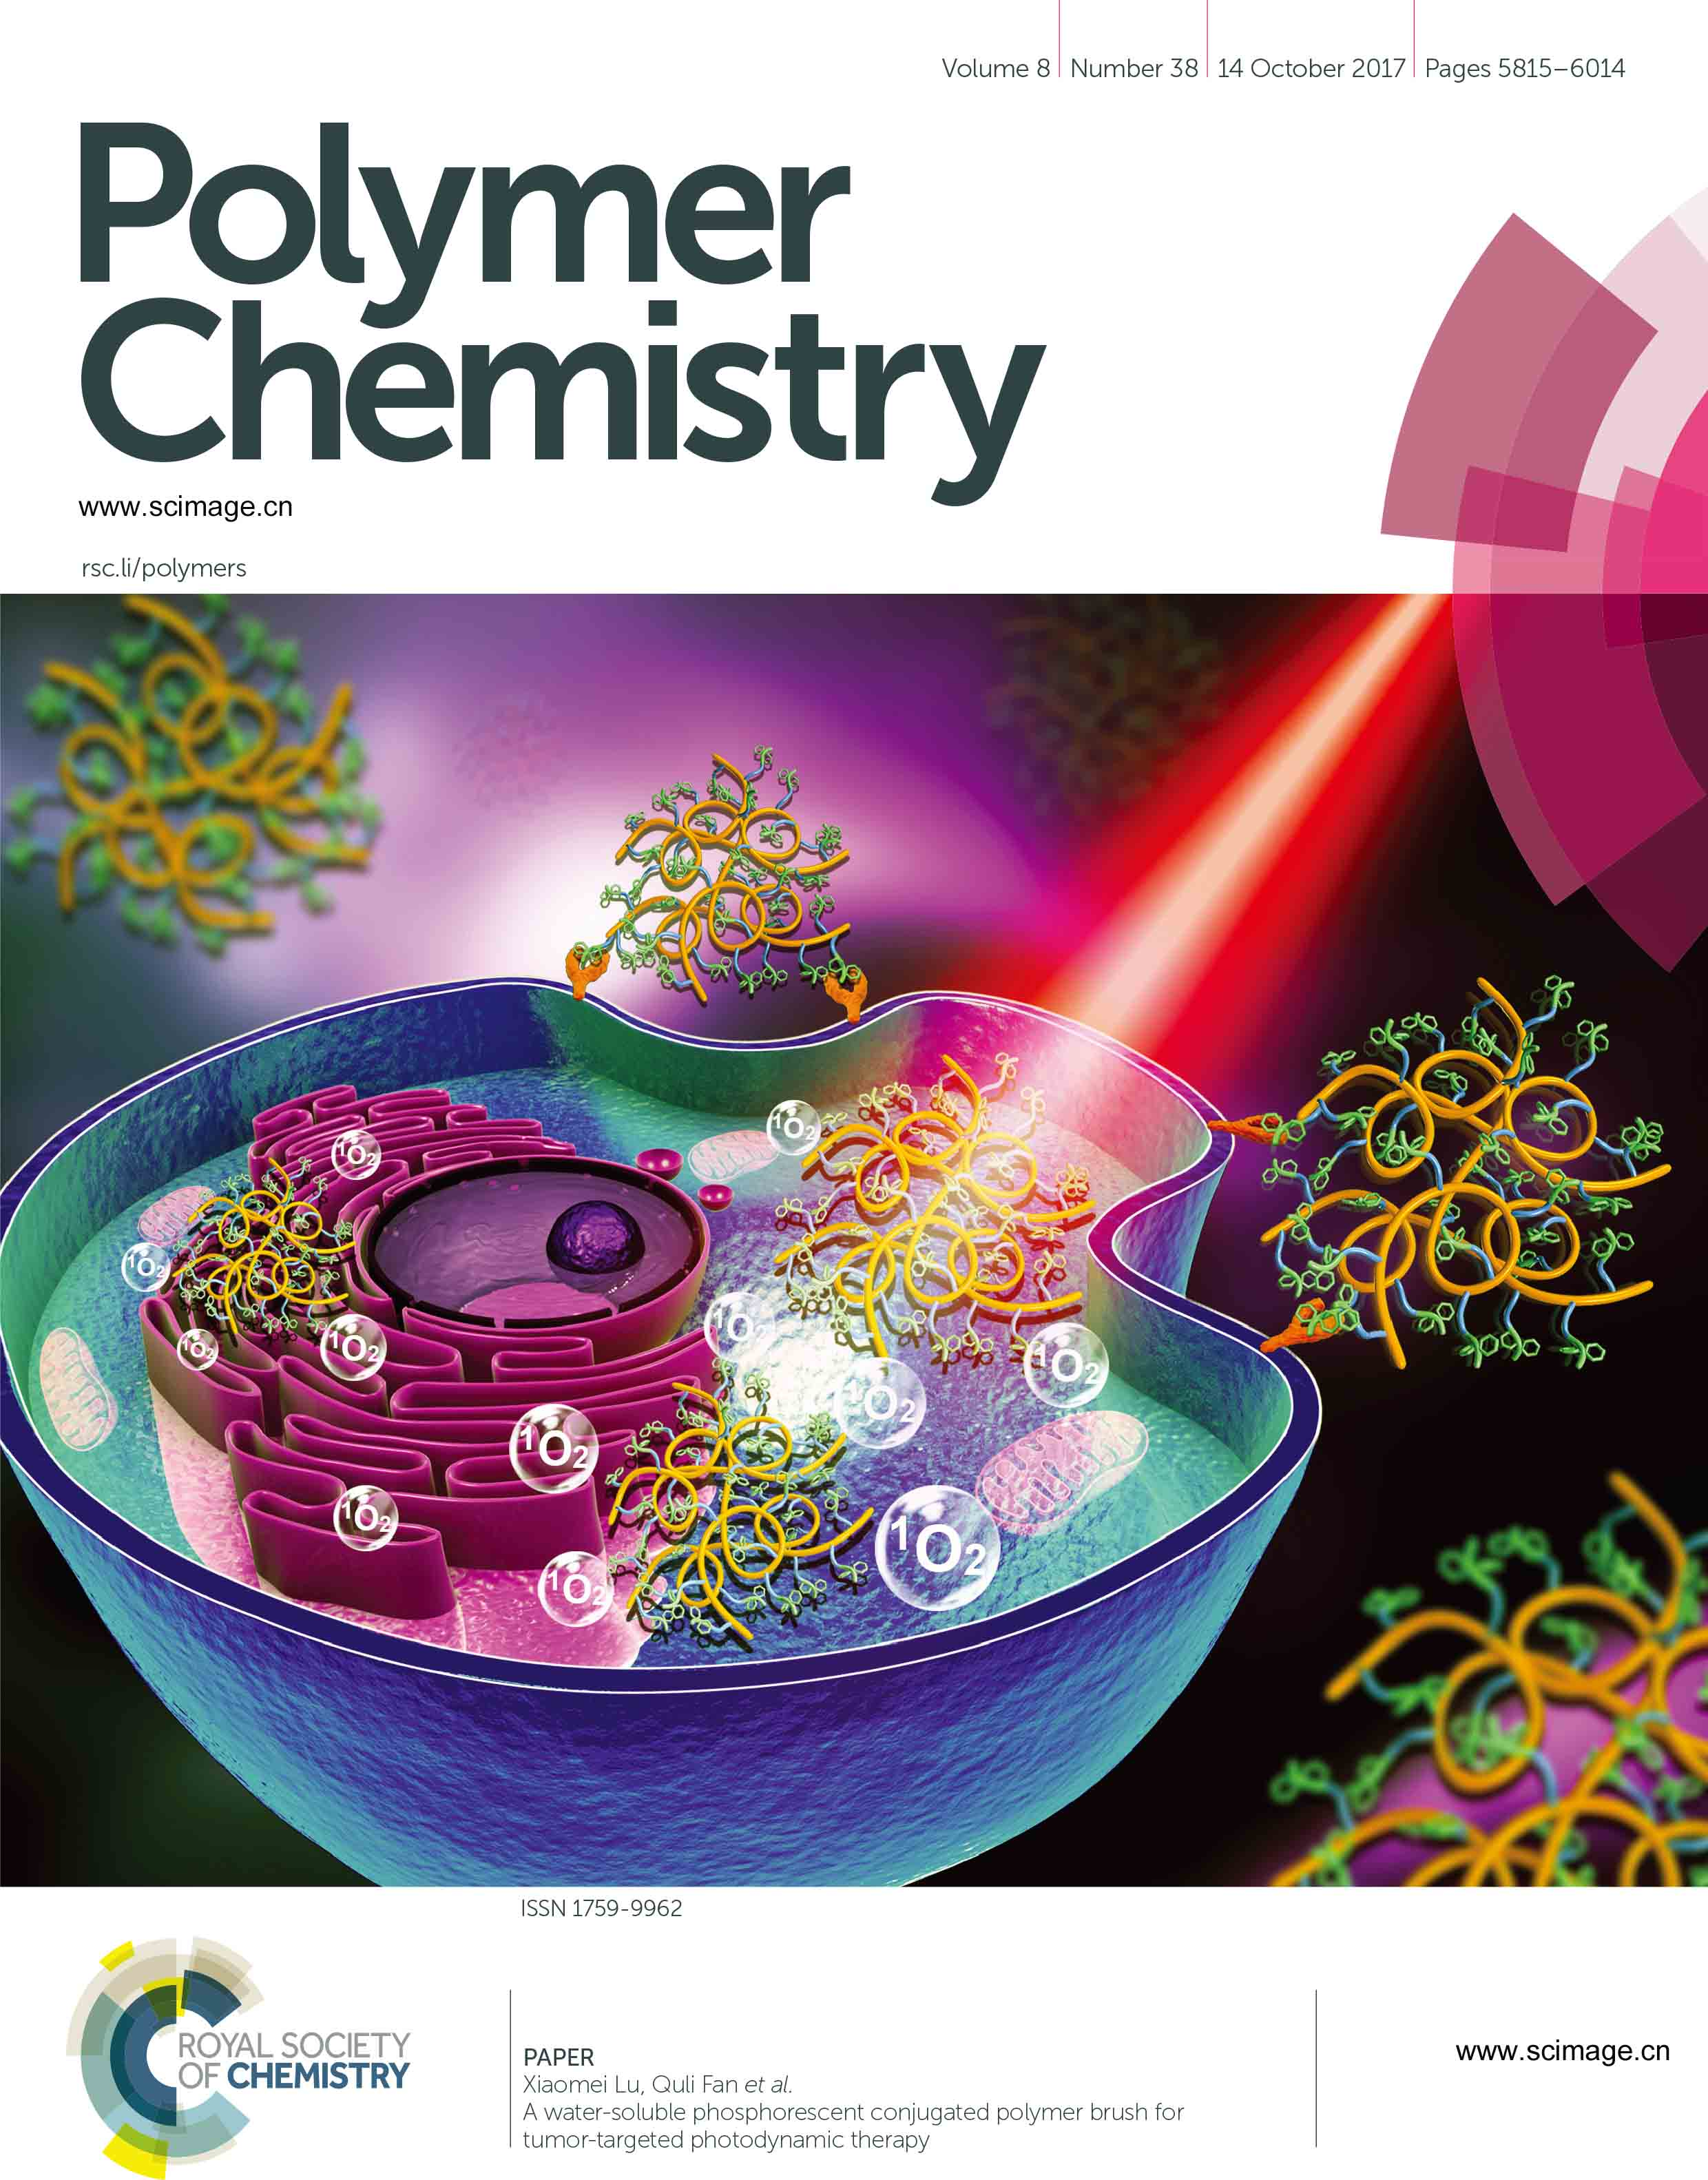 A water-soluble phosphorescent conjugated polymer brush for tumor-targeted photodynamic therapy